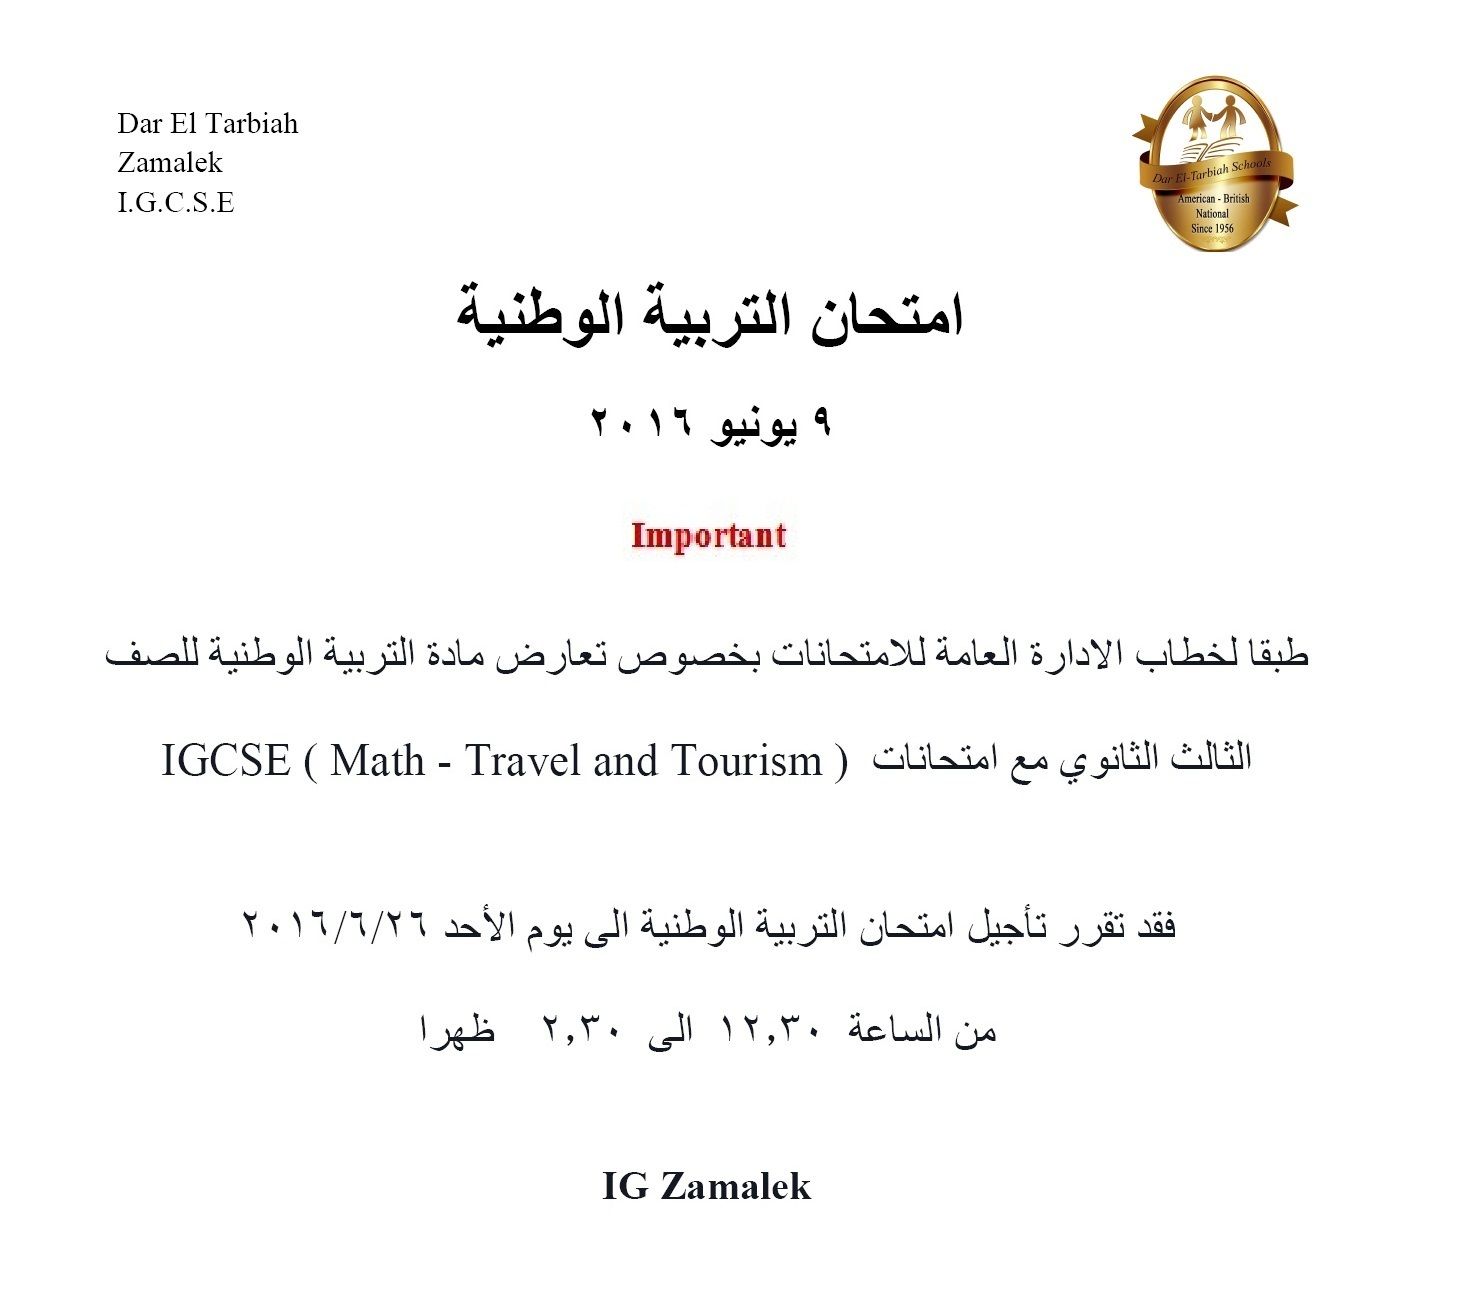 IG Zamalek - Exams on 9 June 2016